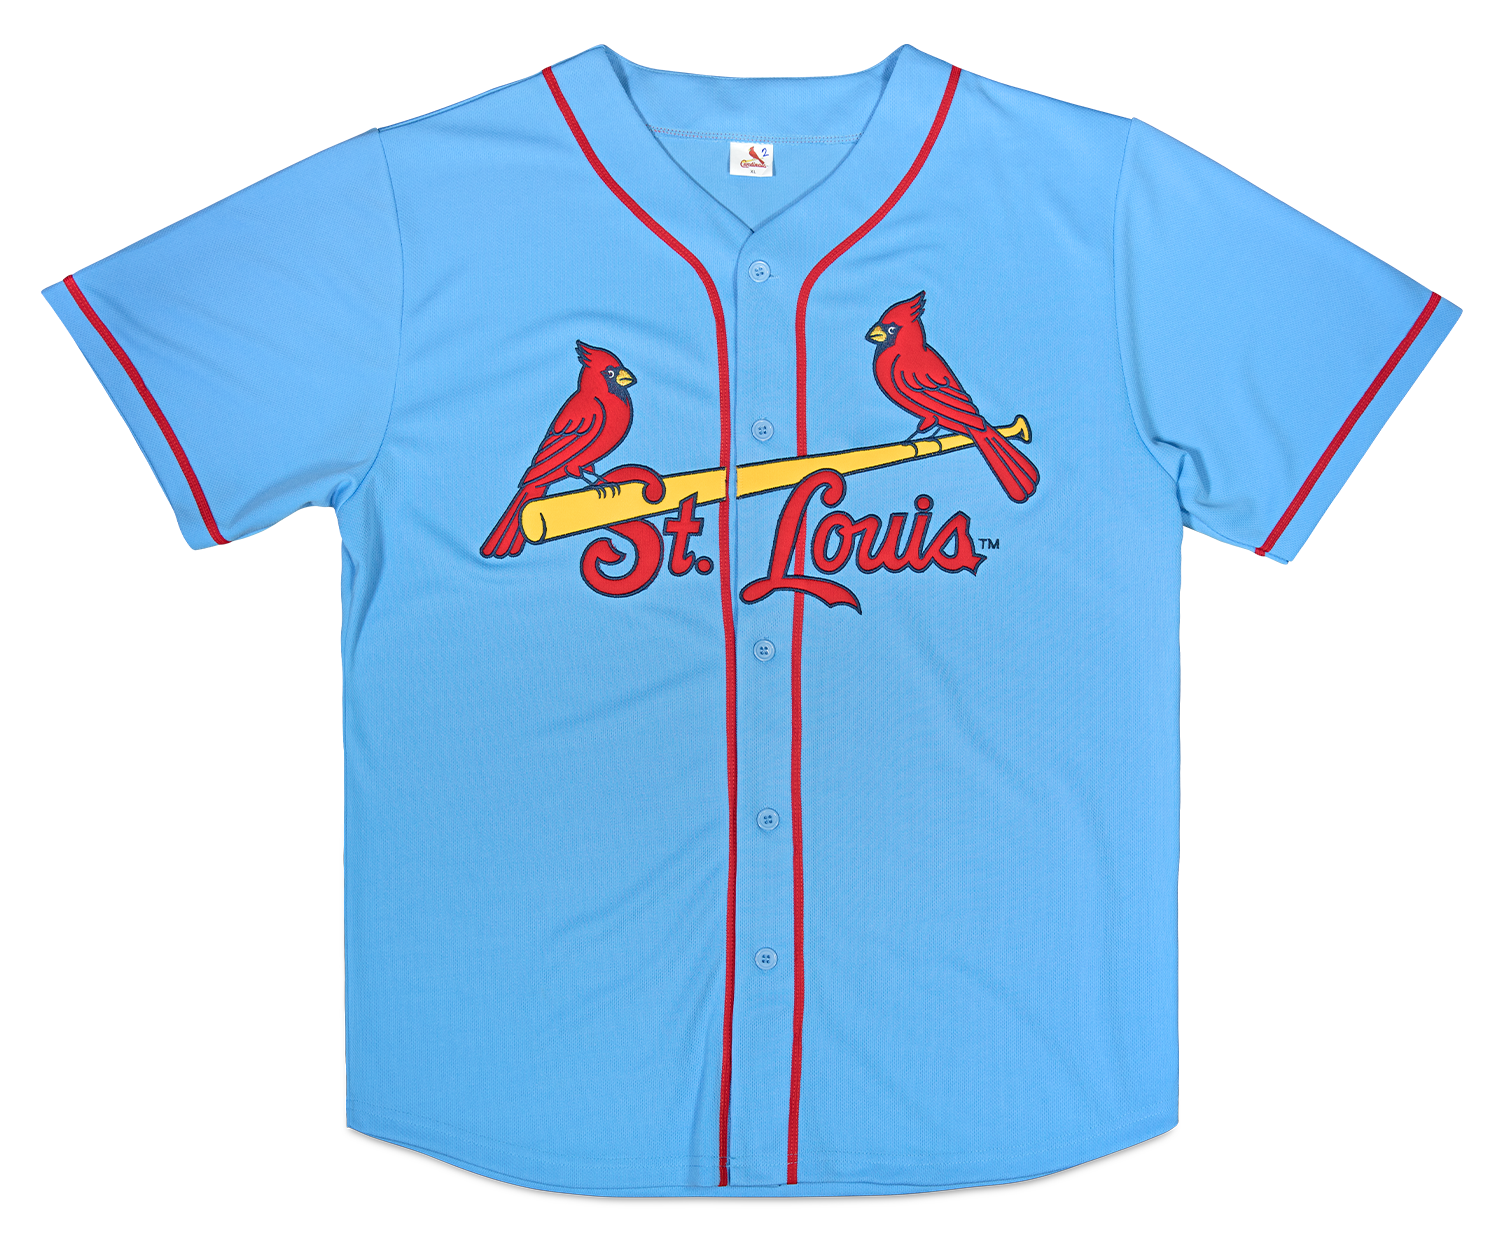 4d9ef8996 ... very own St. Louis Cardinals baby blue jersey worn by the Cardinals  this season during Saturday road games. This giveaway is a Busch Stadium  Exclusive.